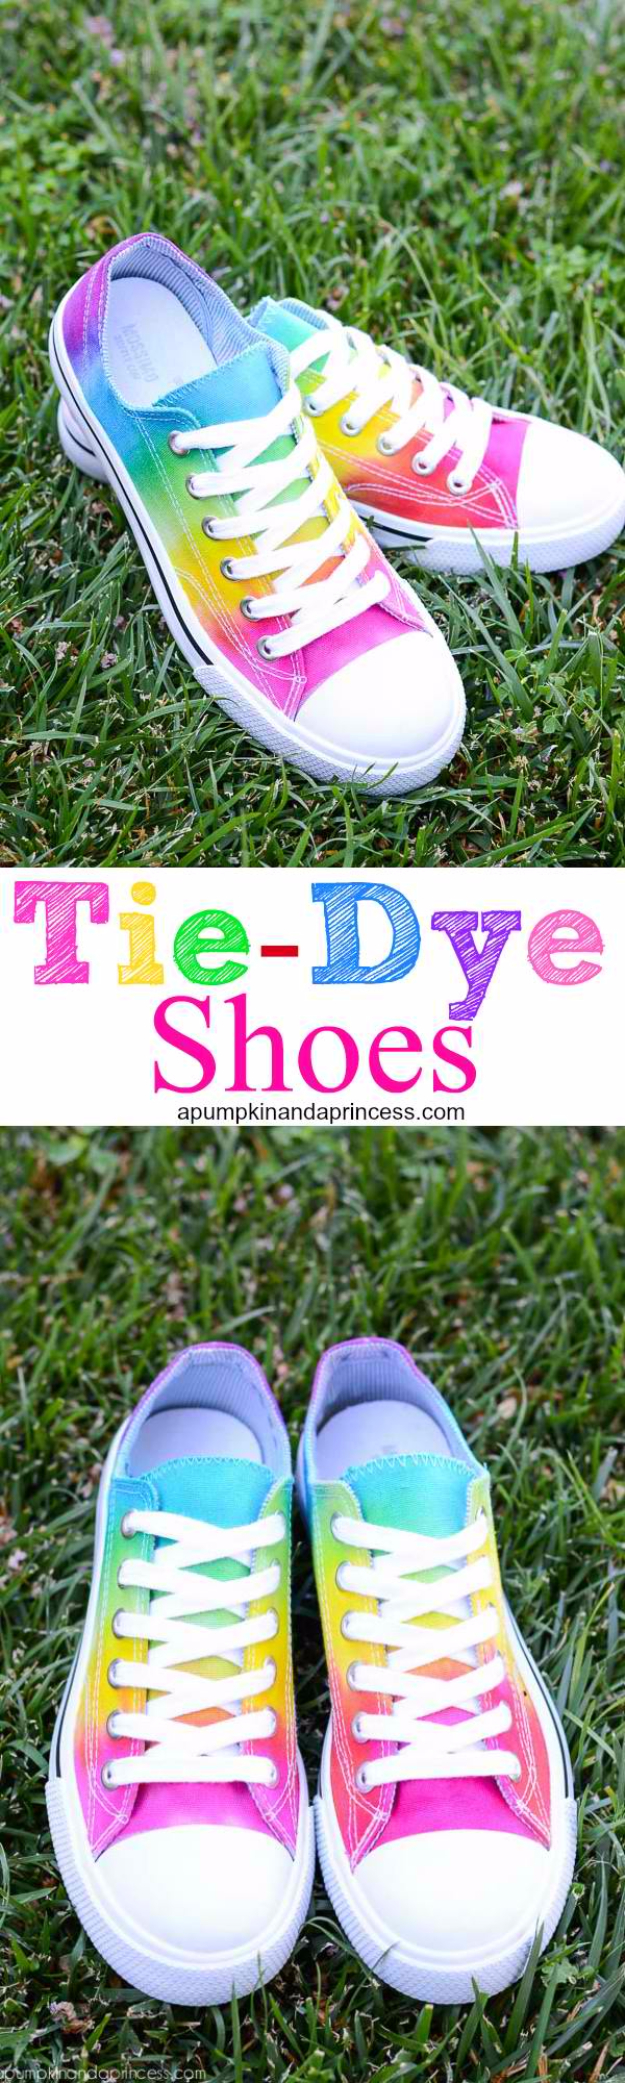 DIY Shoe Makeovers - Rainbow Tie Dye Shoes - Cool Ways to Update, Decorate, Paint, Bedazle and Add Sparkle to Your Flats, Pumps, Tennis Shoes, Boots and Boring Shoes - Cool Crafts and DIY Shoe Ideas for Teens and Adults http://diyprojectsforteens.com/diy-shoe-makeovers